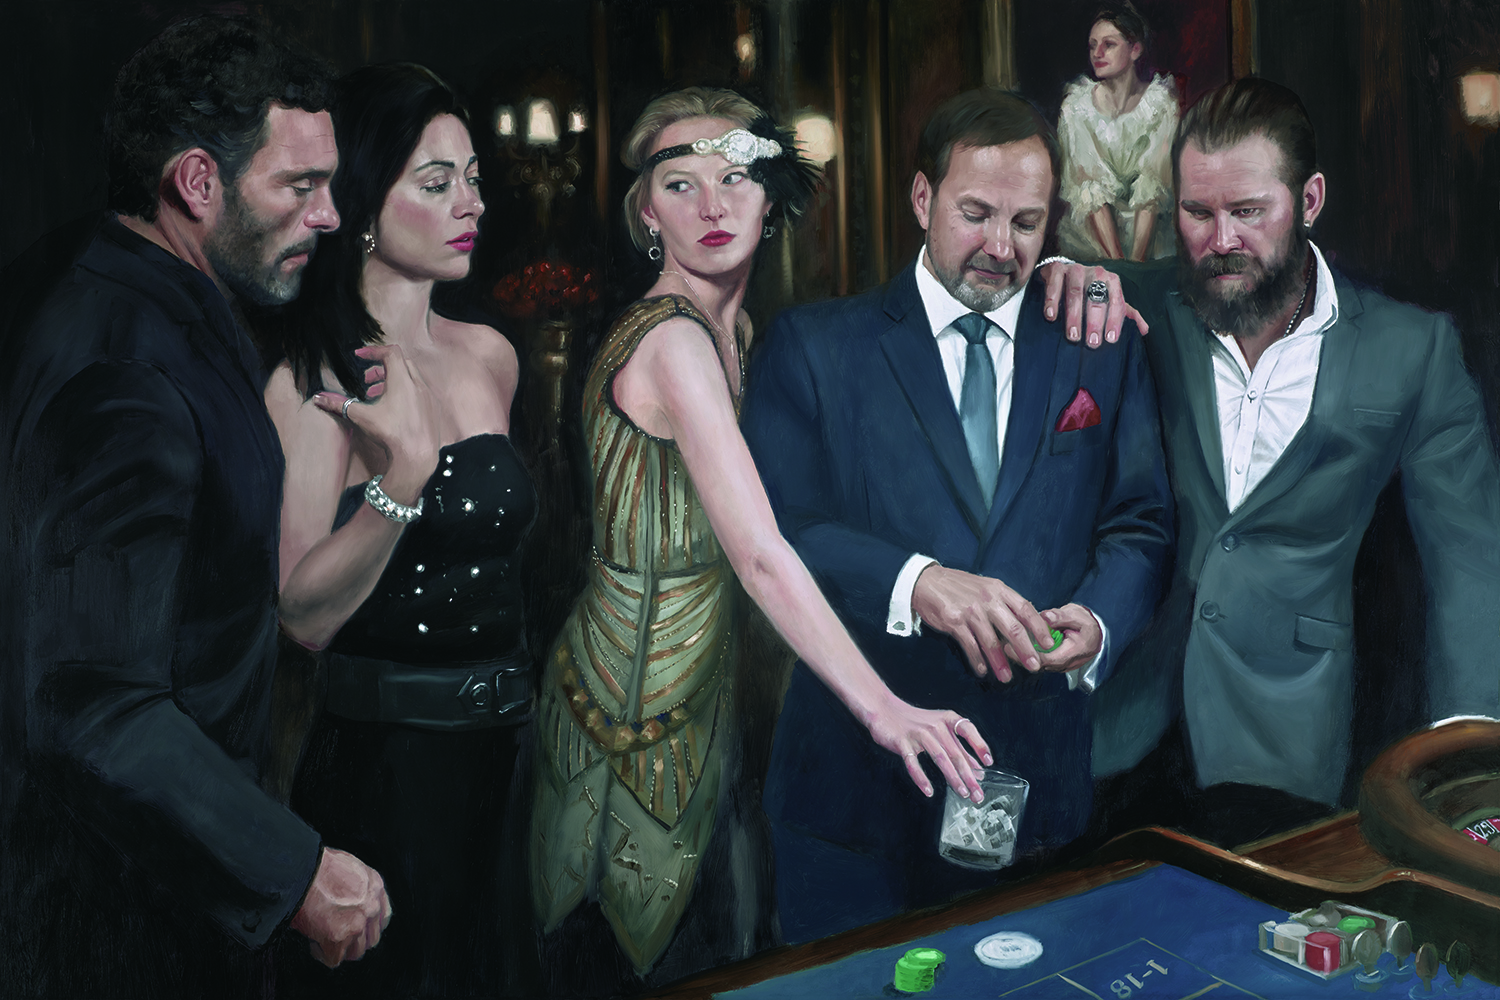 The Diamond Roulette - The Diamond Roulette is a series of paintings about a diamond heist at the Ritz Casino. It was first shown on 5th December 2018 at the Ritz Casino. Click image to see the series.